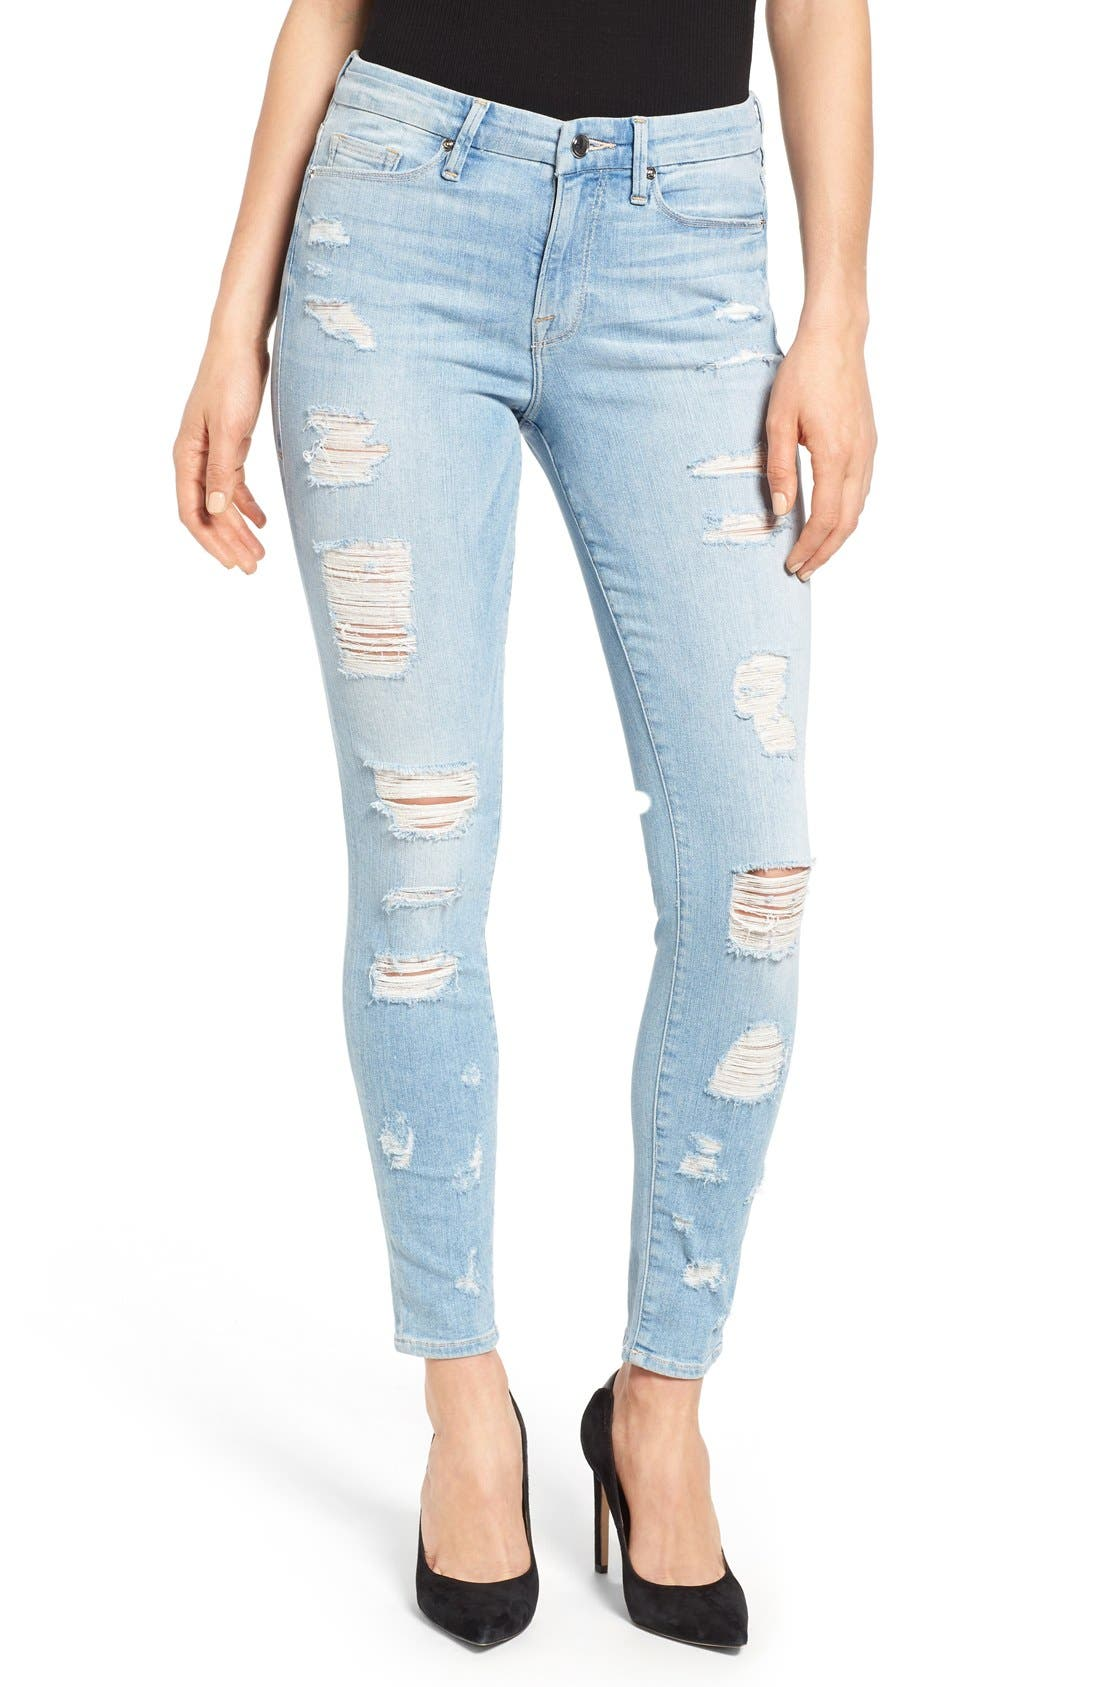 Main Image - Good American Good Legs High Rise Ripped Skinny Jeans (Blue 008)